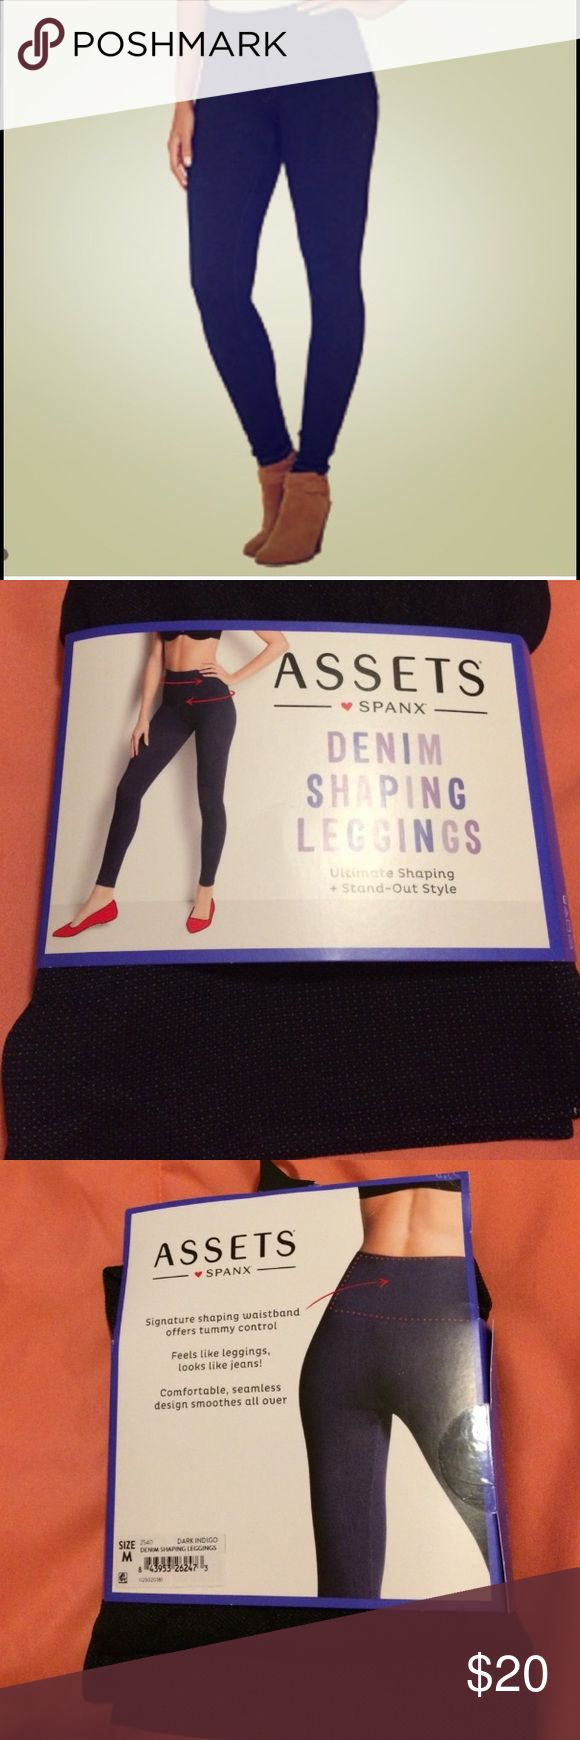 """Assets ❤ Spanx Denim shaping leggings Assets ❤ Spanx Denim shaping leggings. Dark indigo. Ultimate shaping with stand out style. Signature shaping waistband offers tummy control. Feels like leggings, looks like jeans. Comfortable, seamless design smoothes all over. Size medium (waist 31""""-33"""" hips 38""""-40.5"""") Size large (waist 33.5""""-35.5"""" hips 41""""-43"""") SPANX Intimates & Sleepwear Shapewear"""